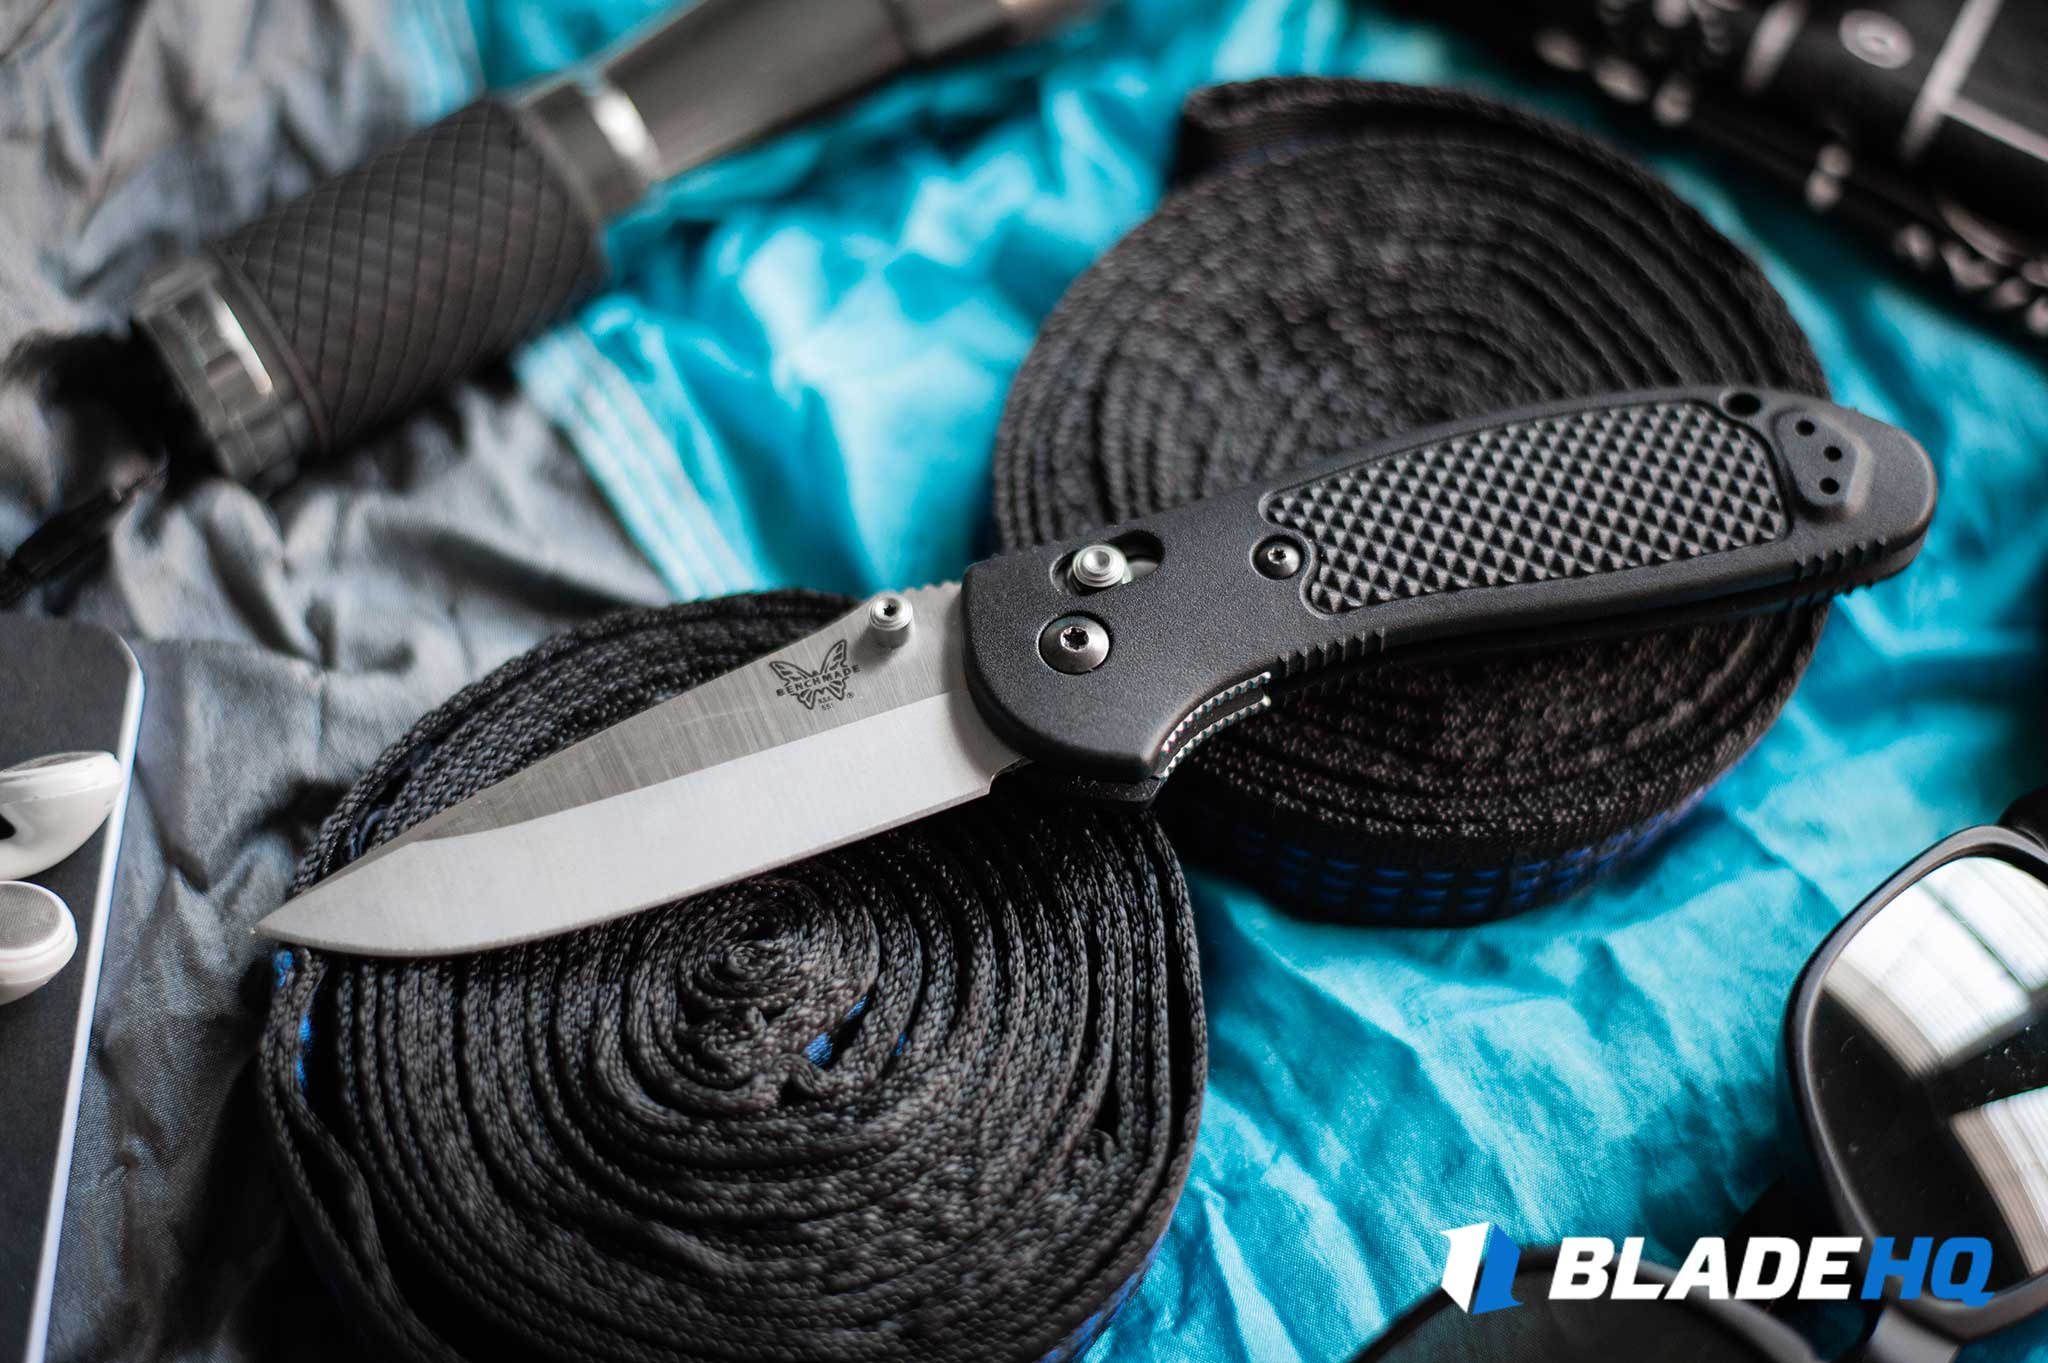 Benchmade Griptilian Knife Pocket Jewelry